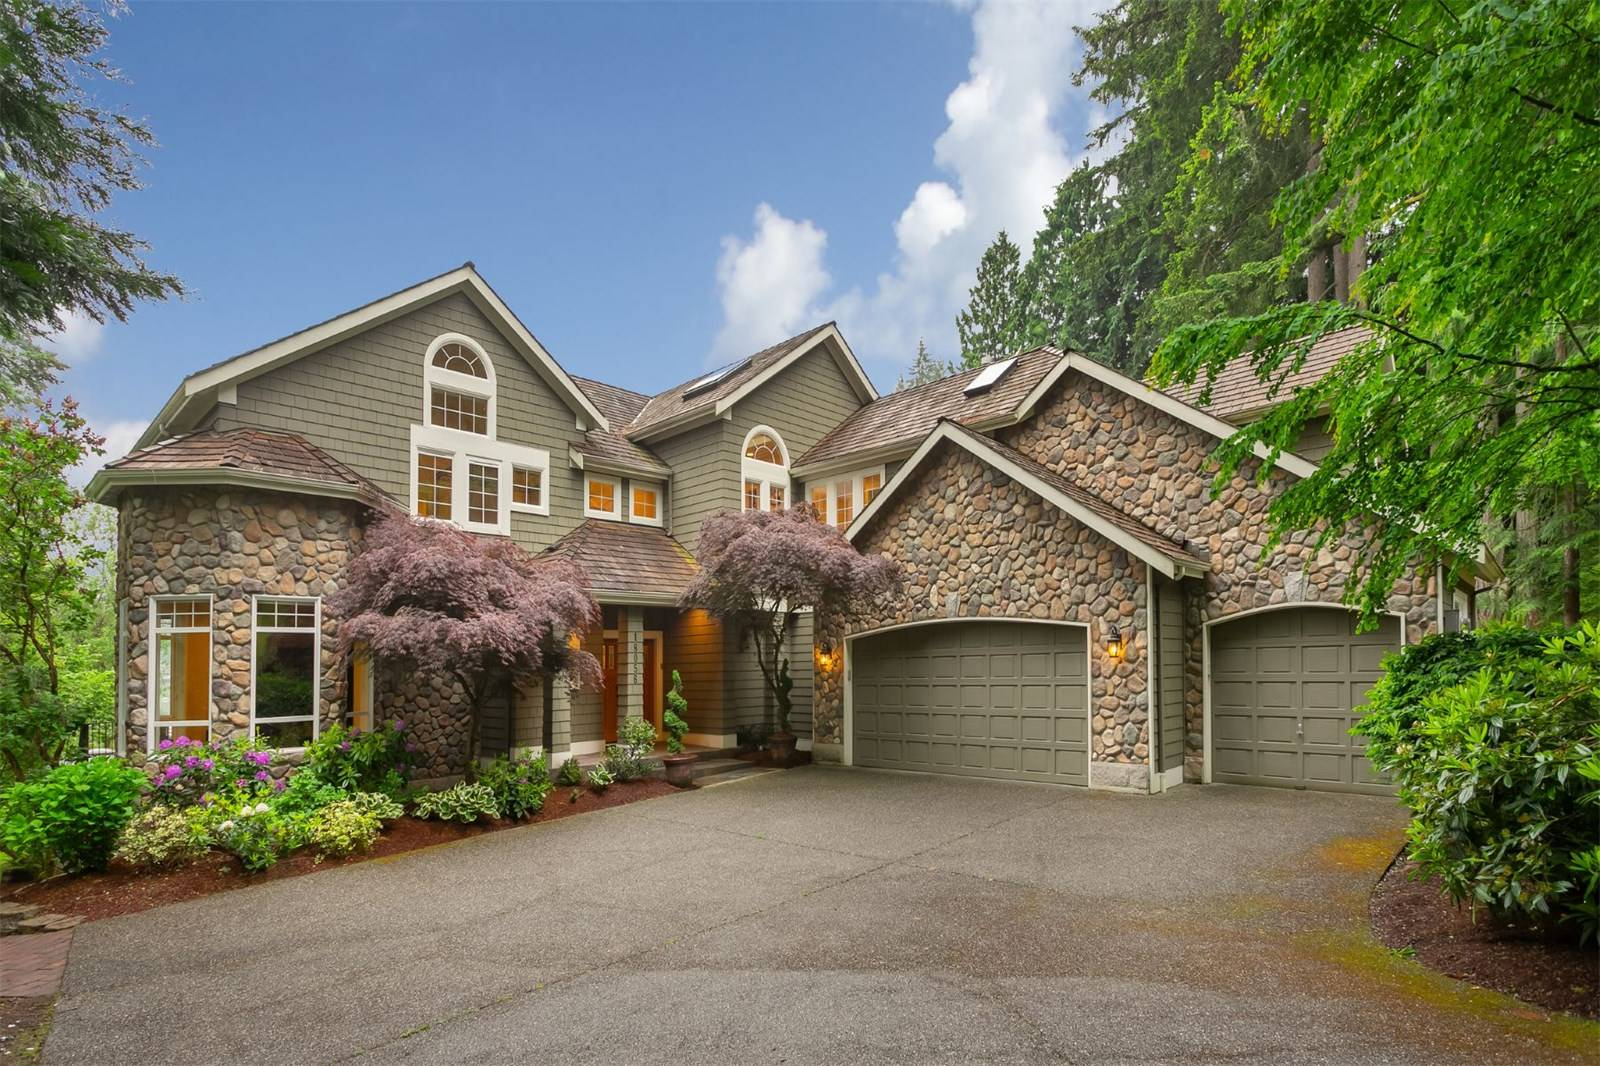 Featured Properties - Ready to start your next adventure?